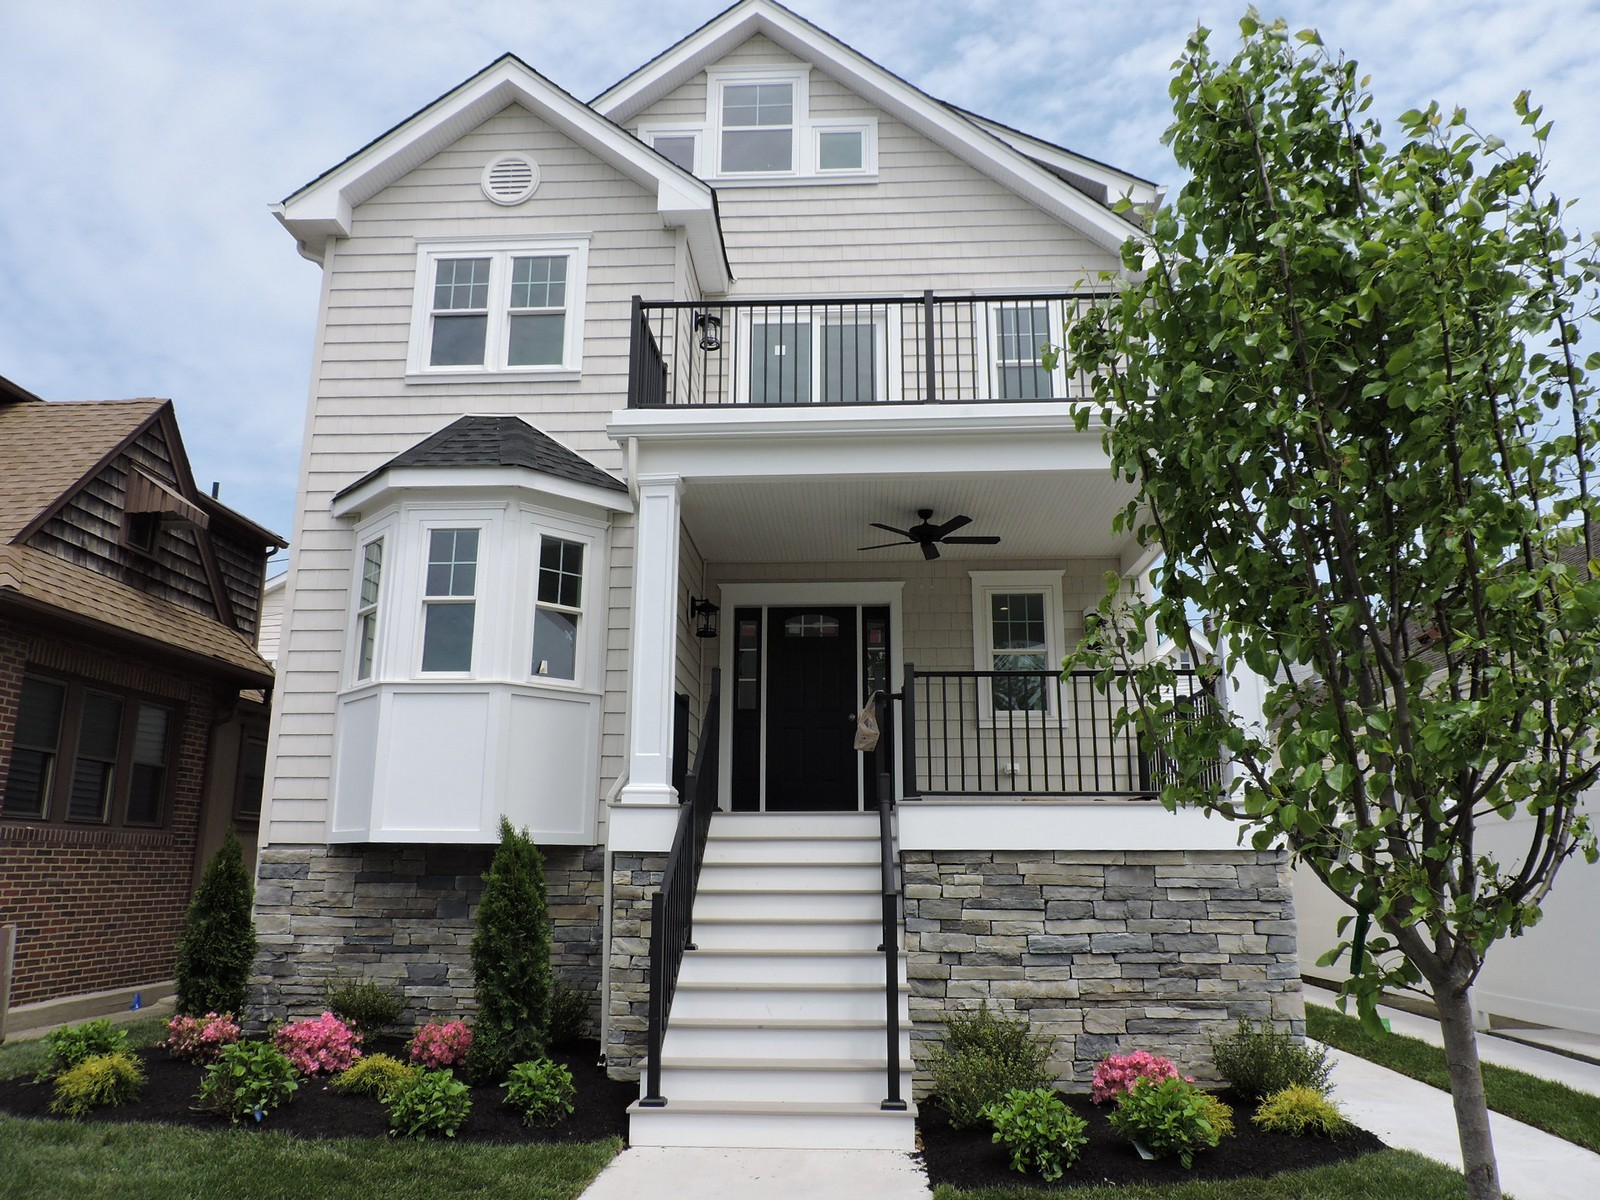 Single Family Home for Sale at 27 N Jasper Ave 27 N Jasper Ave NEW CONSTRUCTION Margate, New Jersey 08402 United States